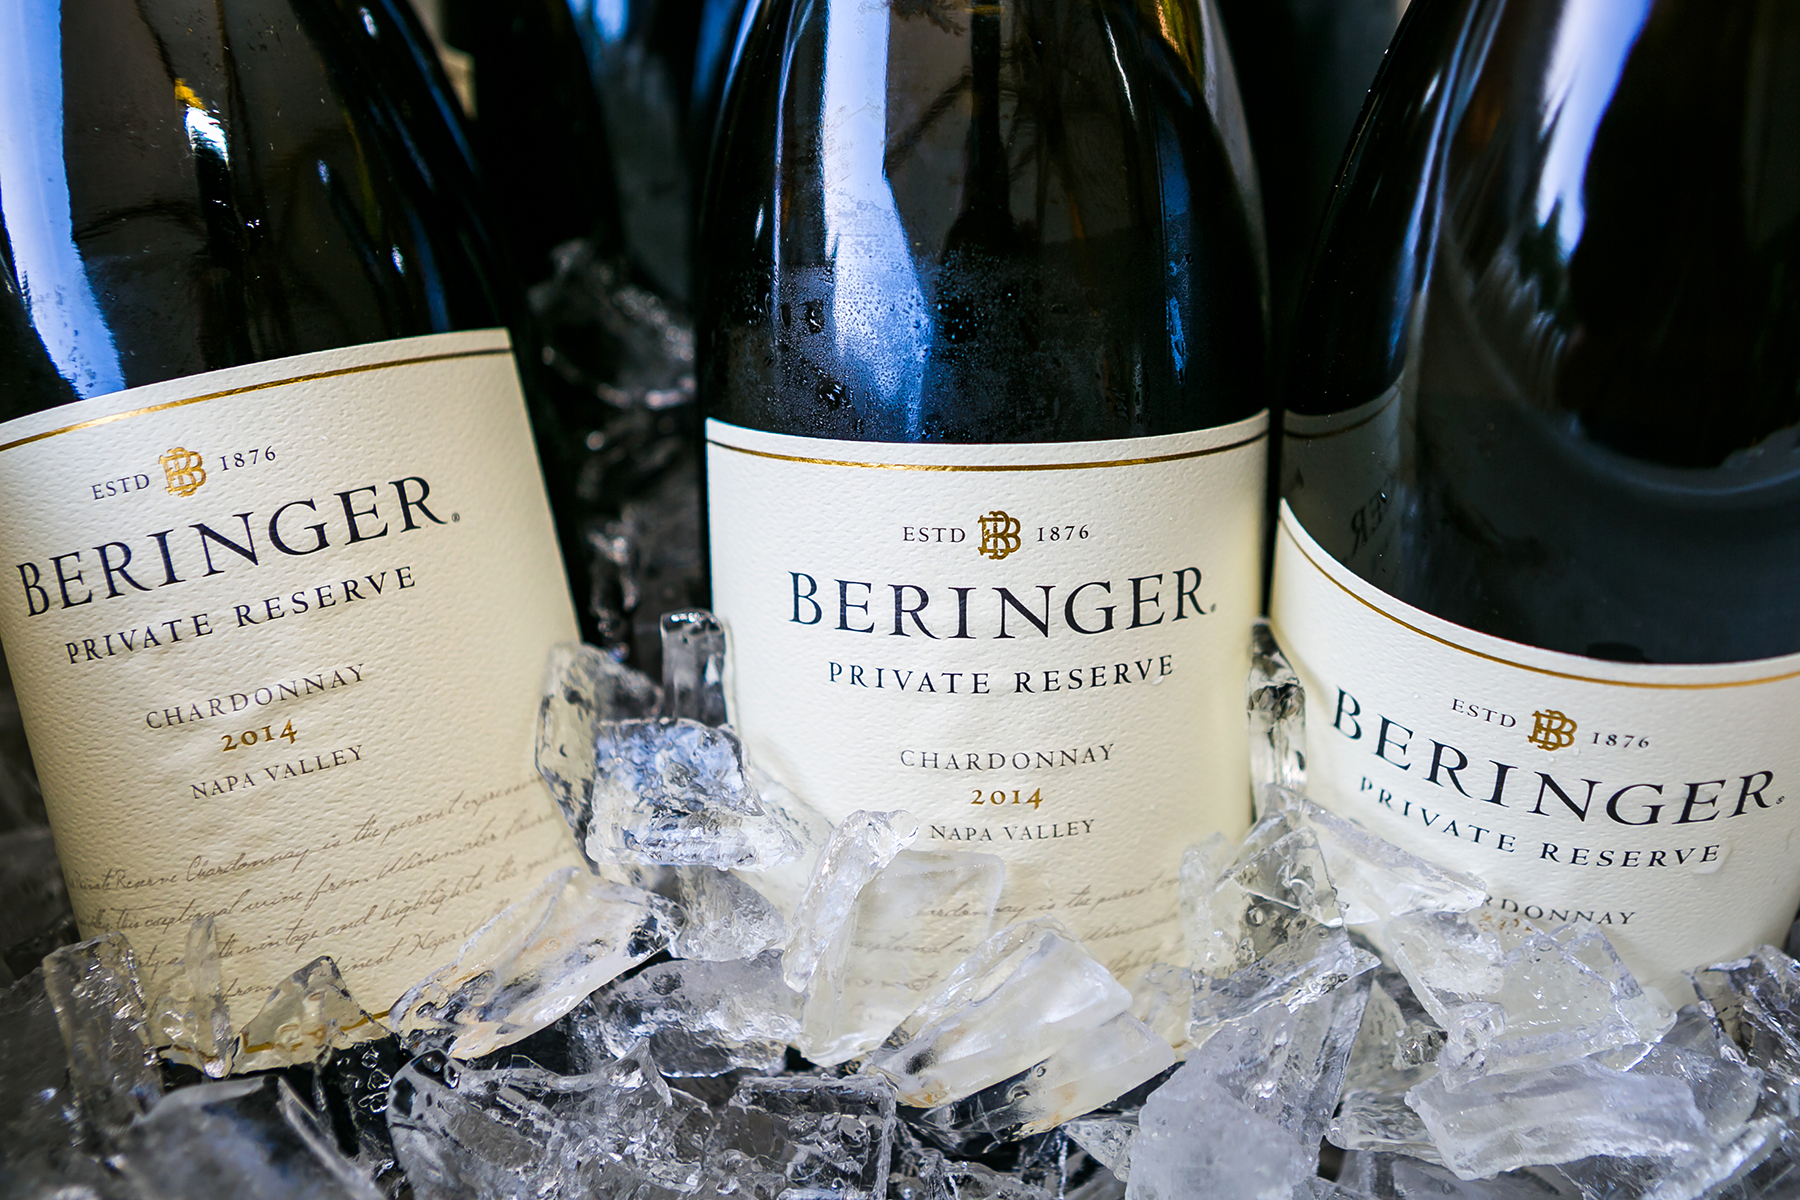 beringer-winery-wine-napa-sonoma-13-events